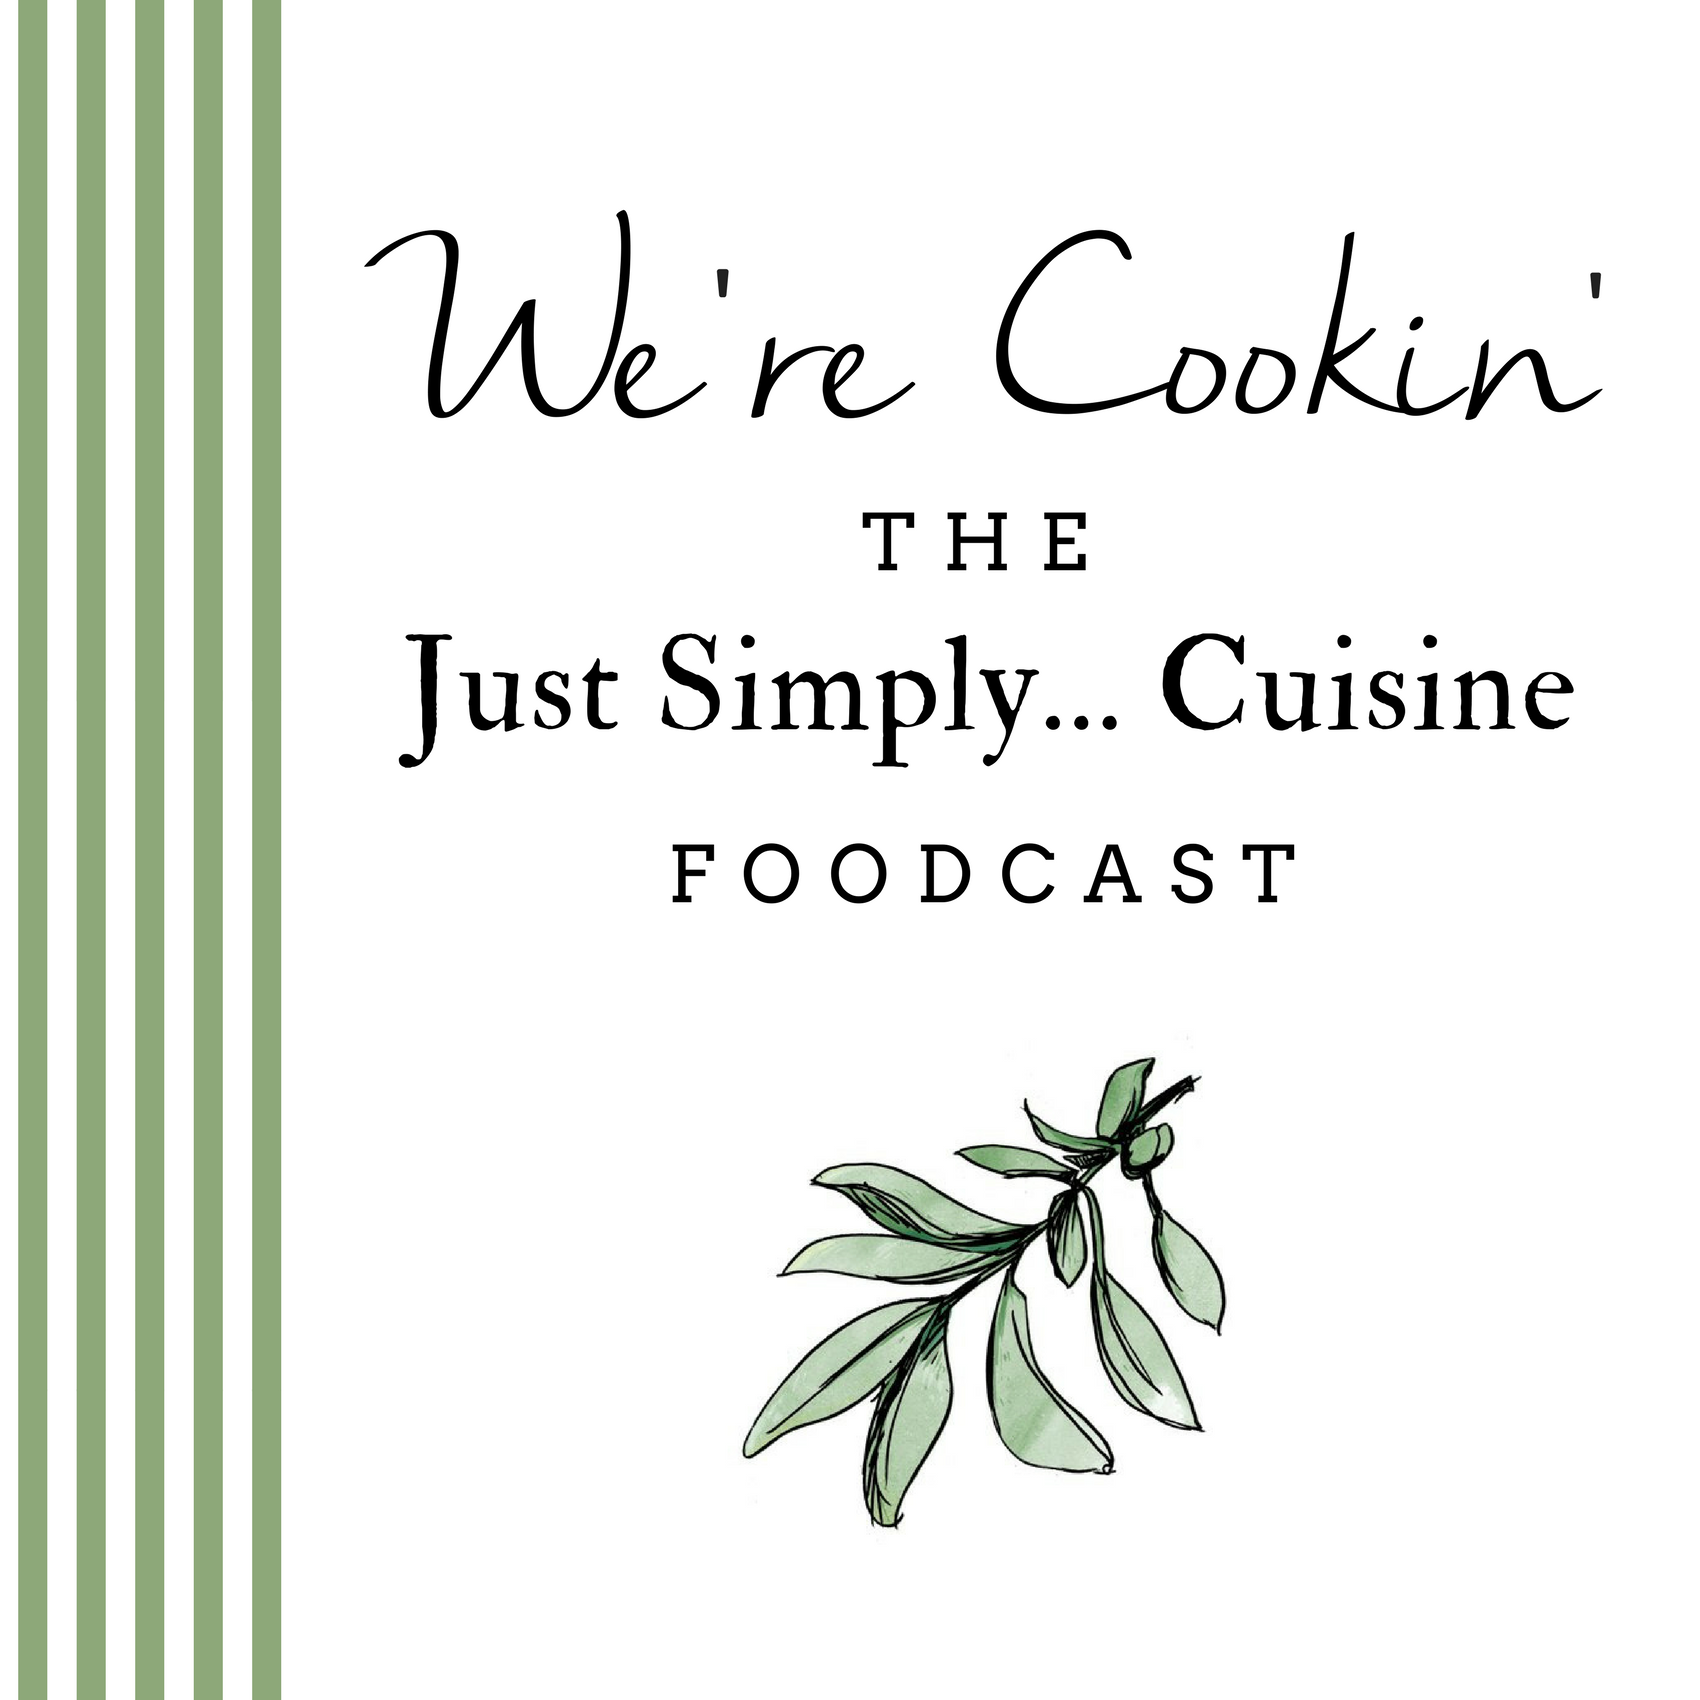 10 - We're Cookin': You Can Do It!